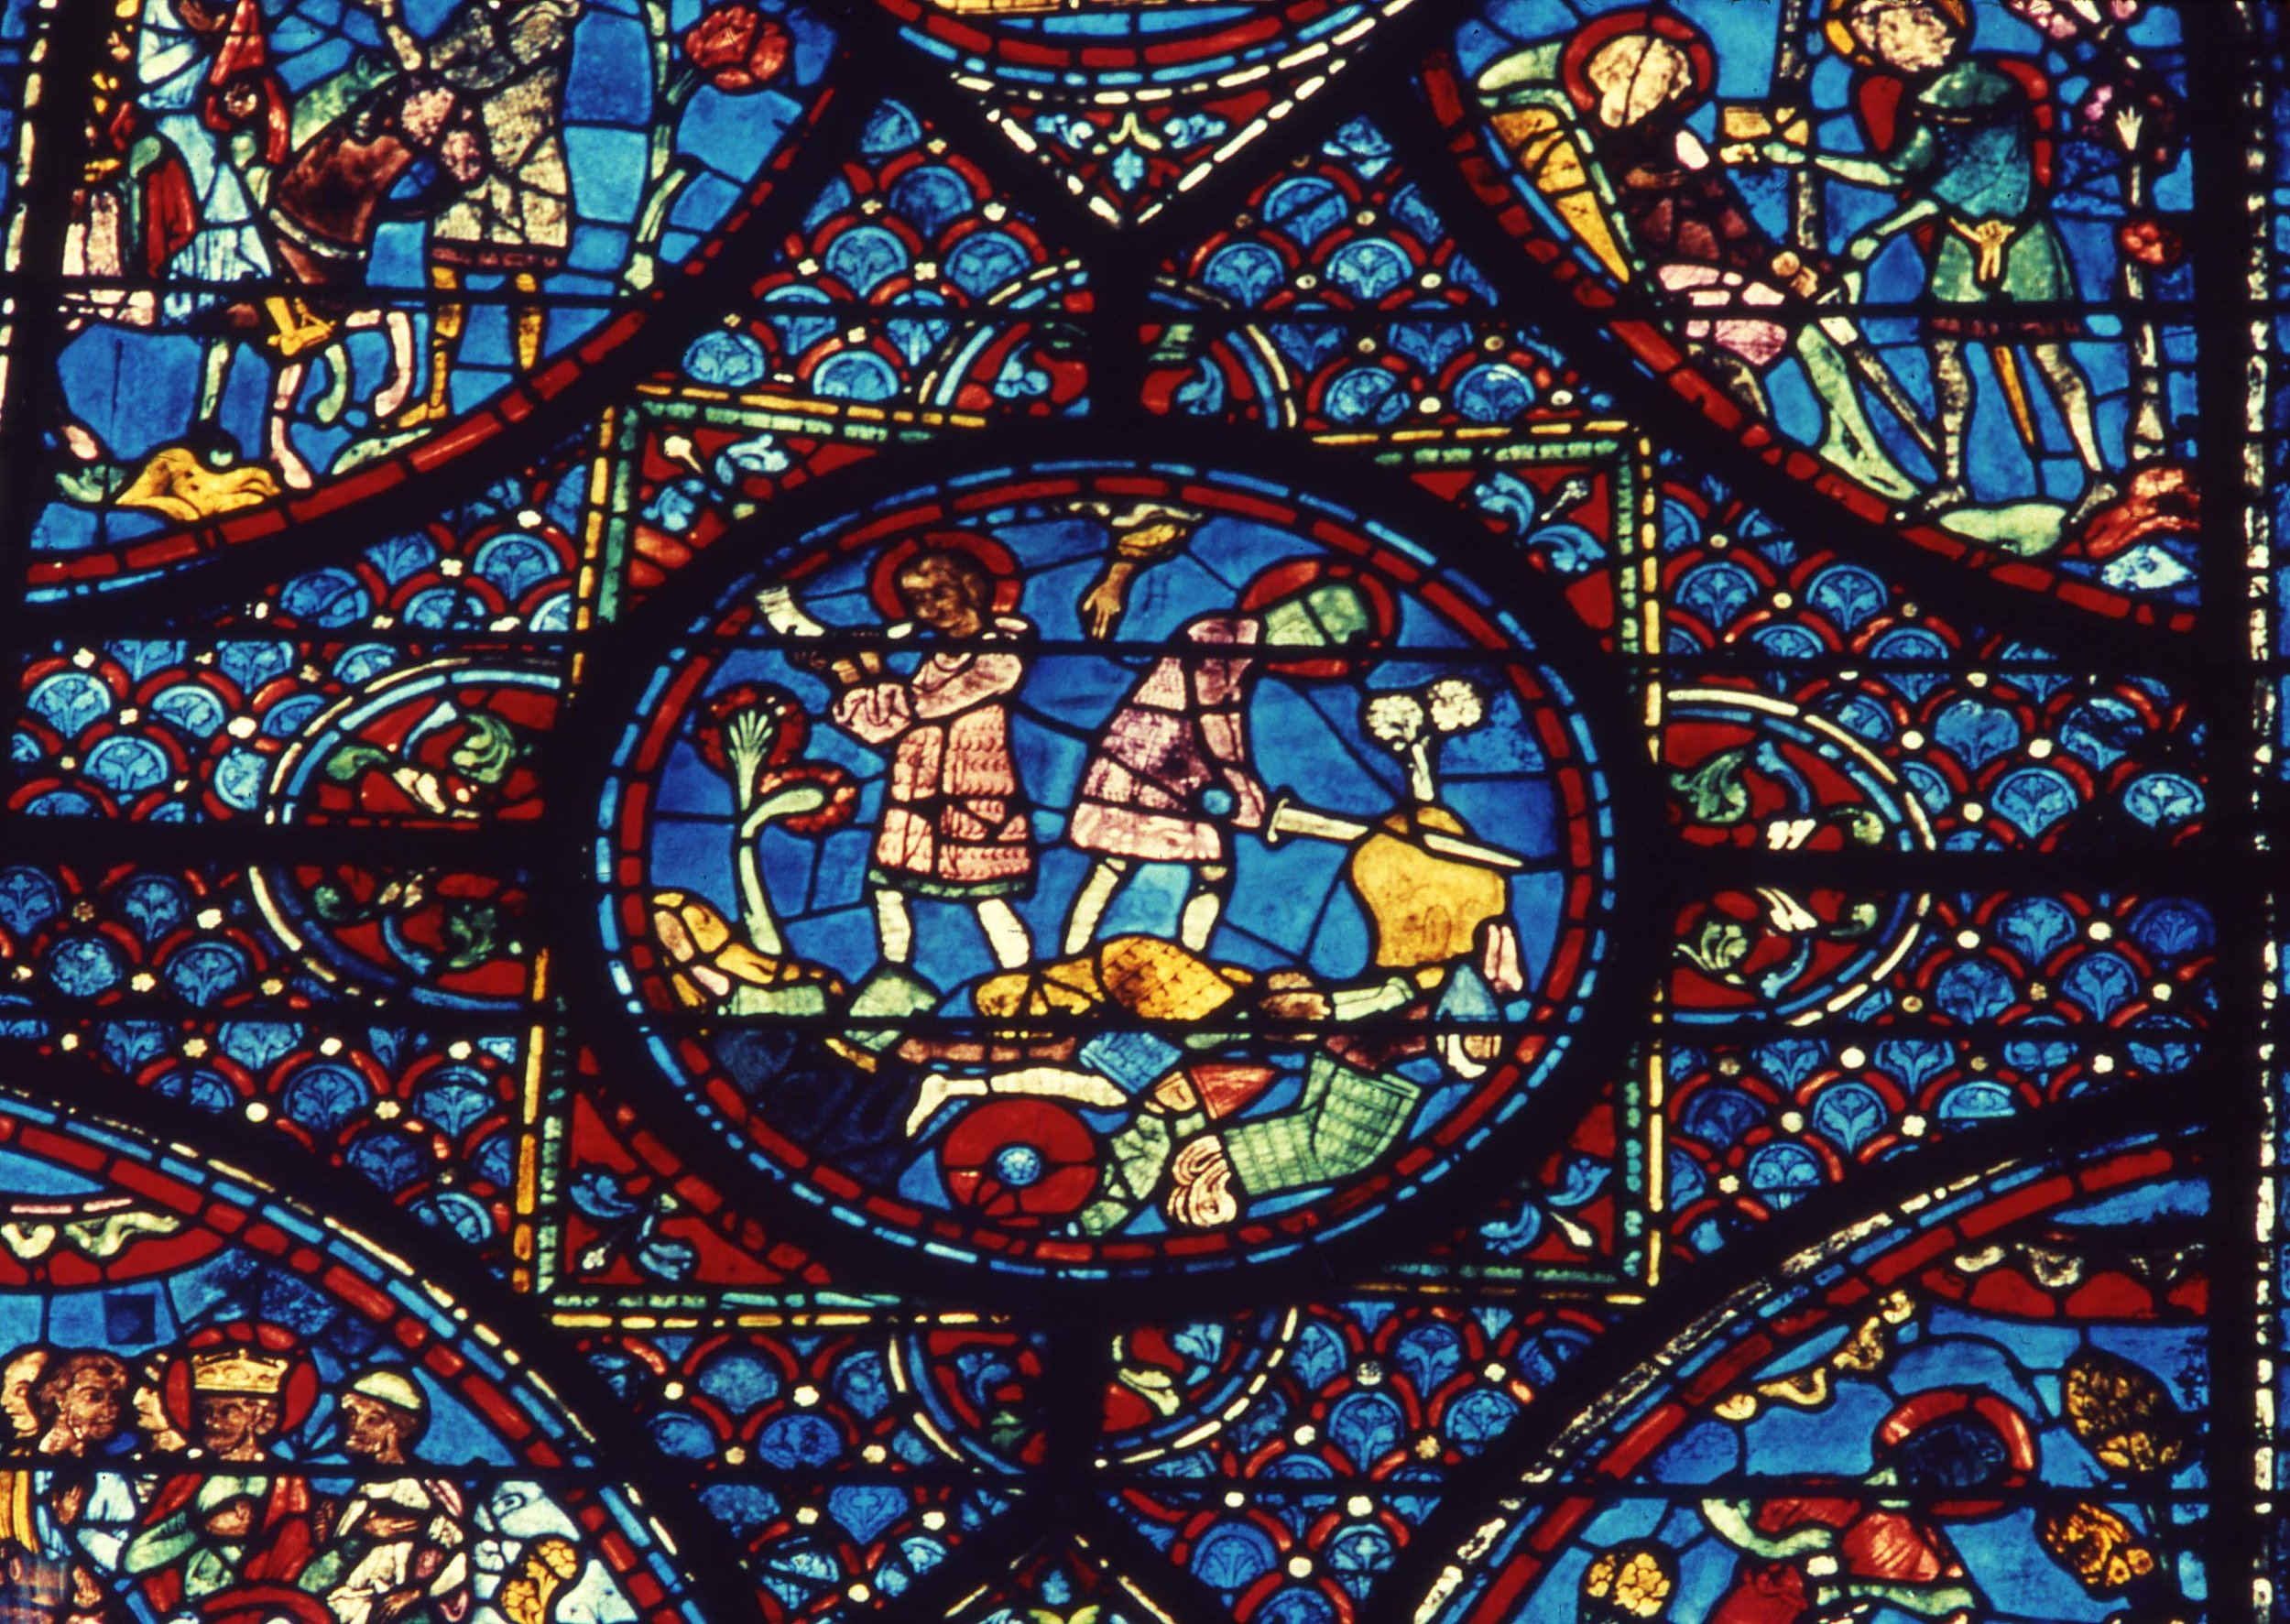 Chartres window detail